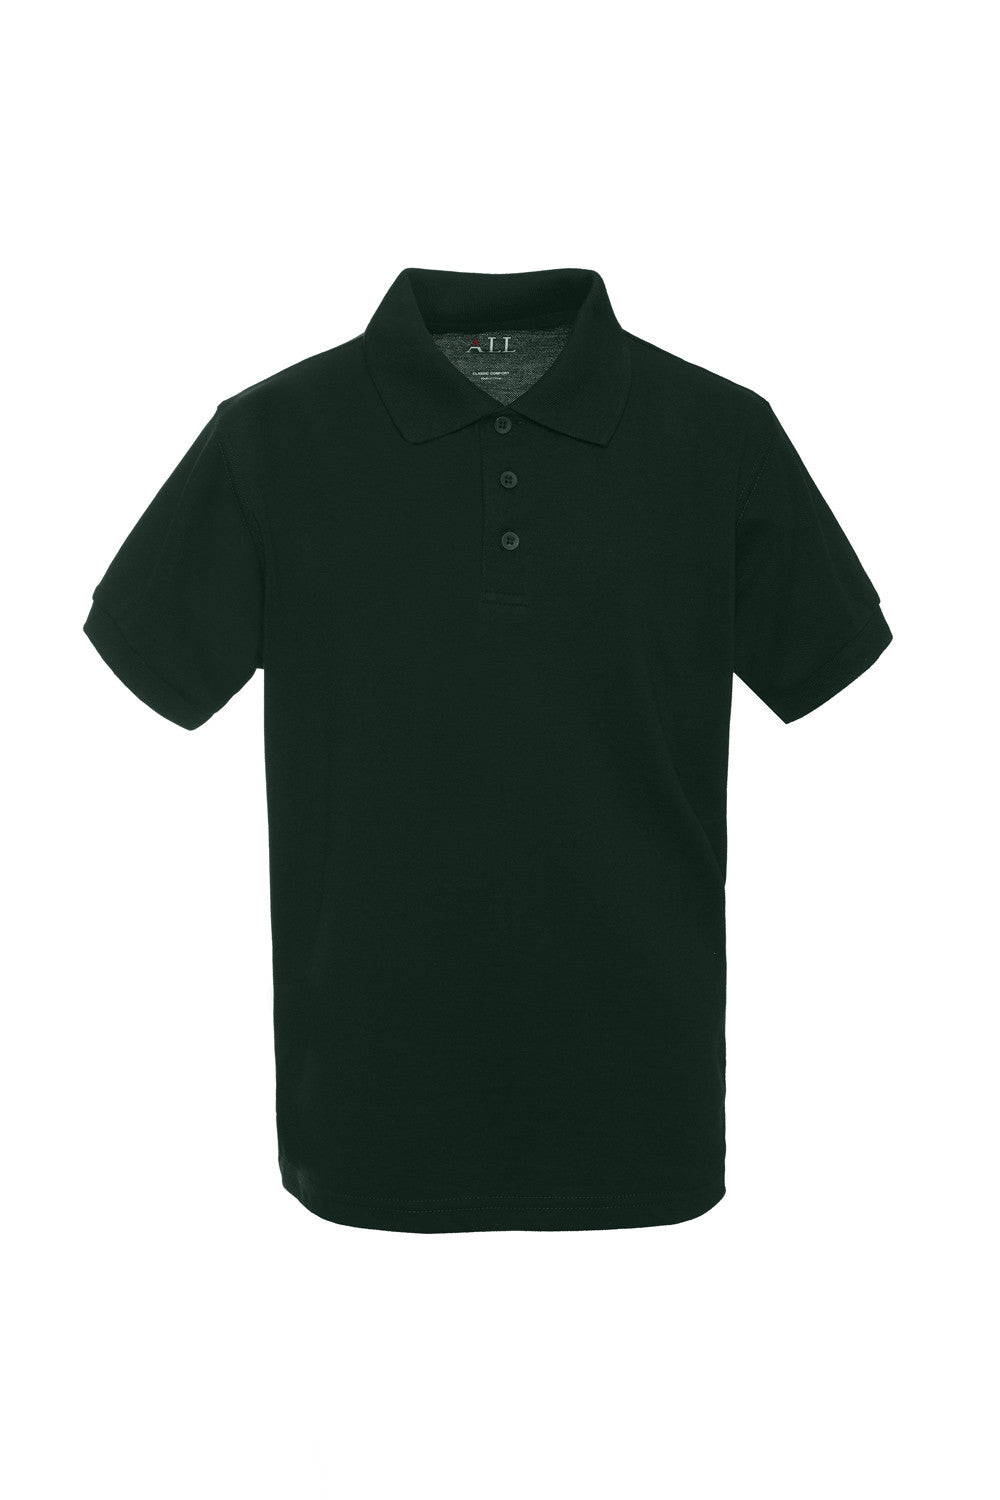 ALL Polo Aldult Unisex Shirt